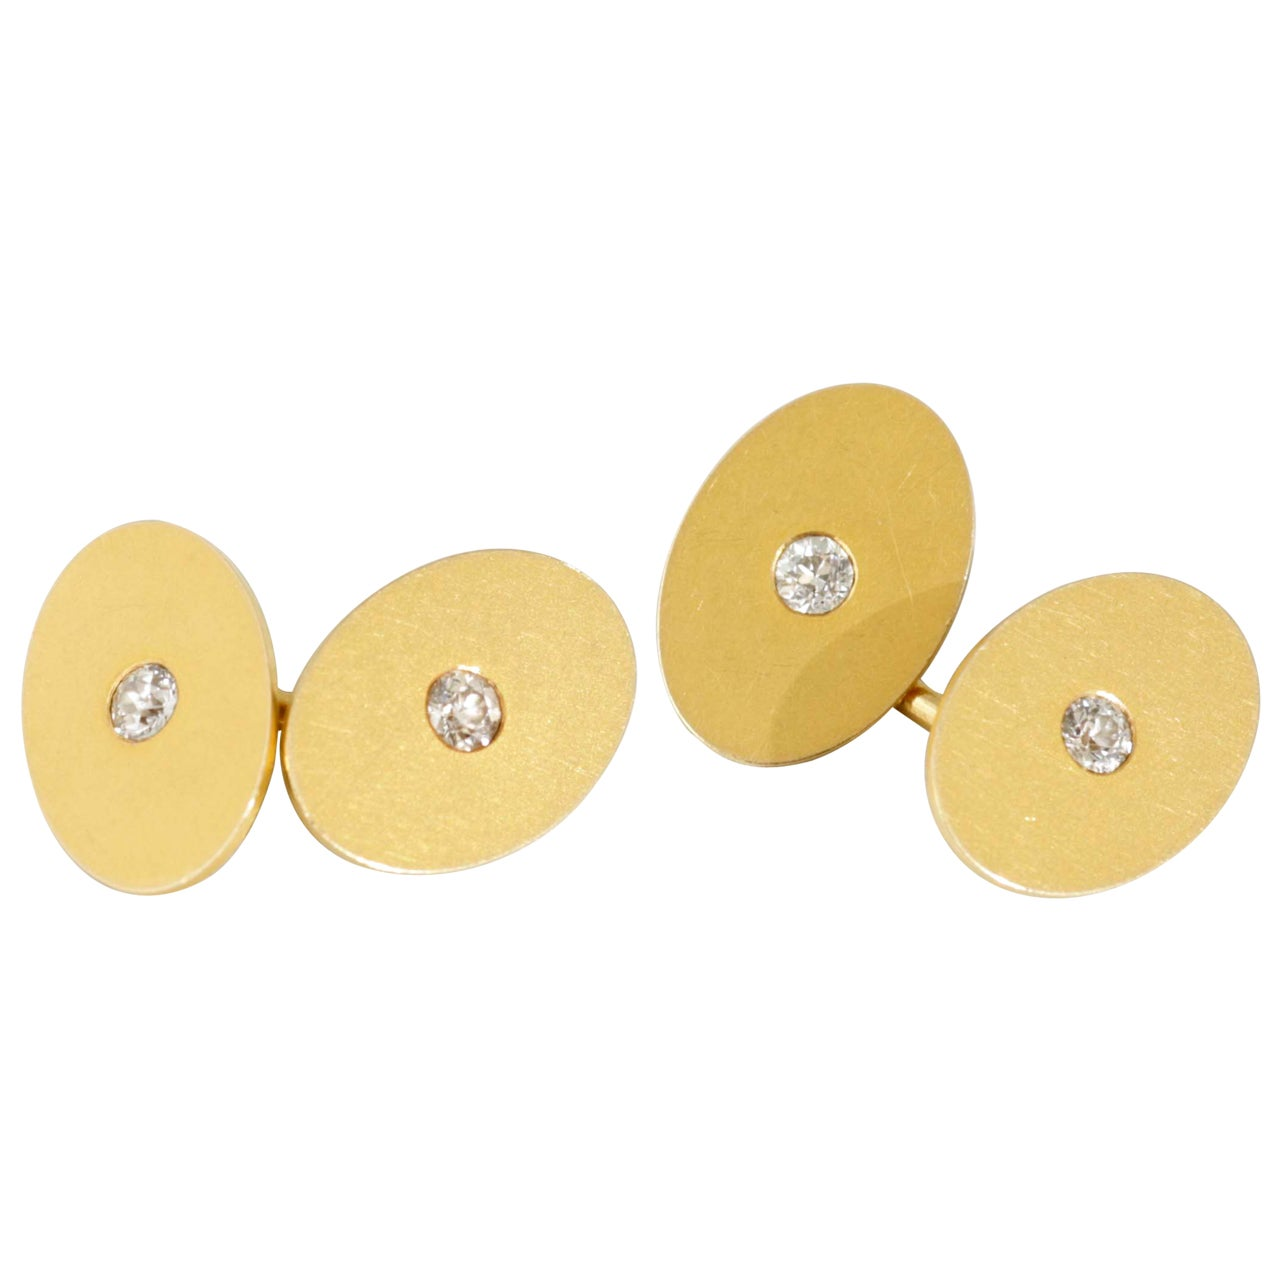 Tiffany & Co. Diamond Gold Oval Cufflinks